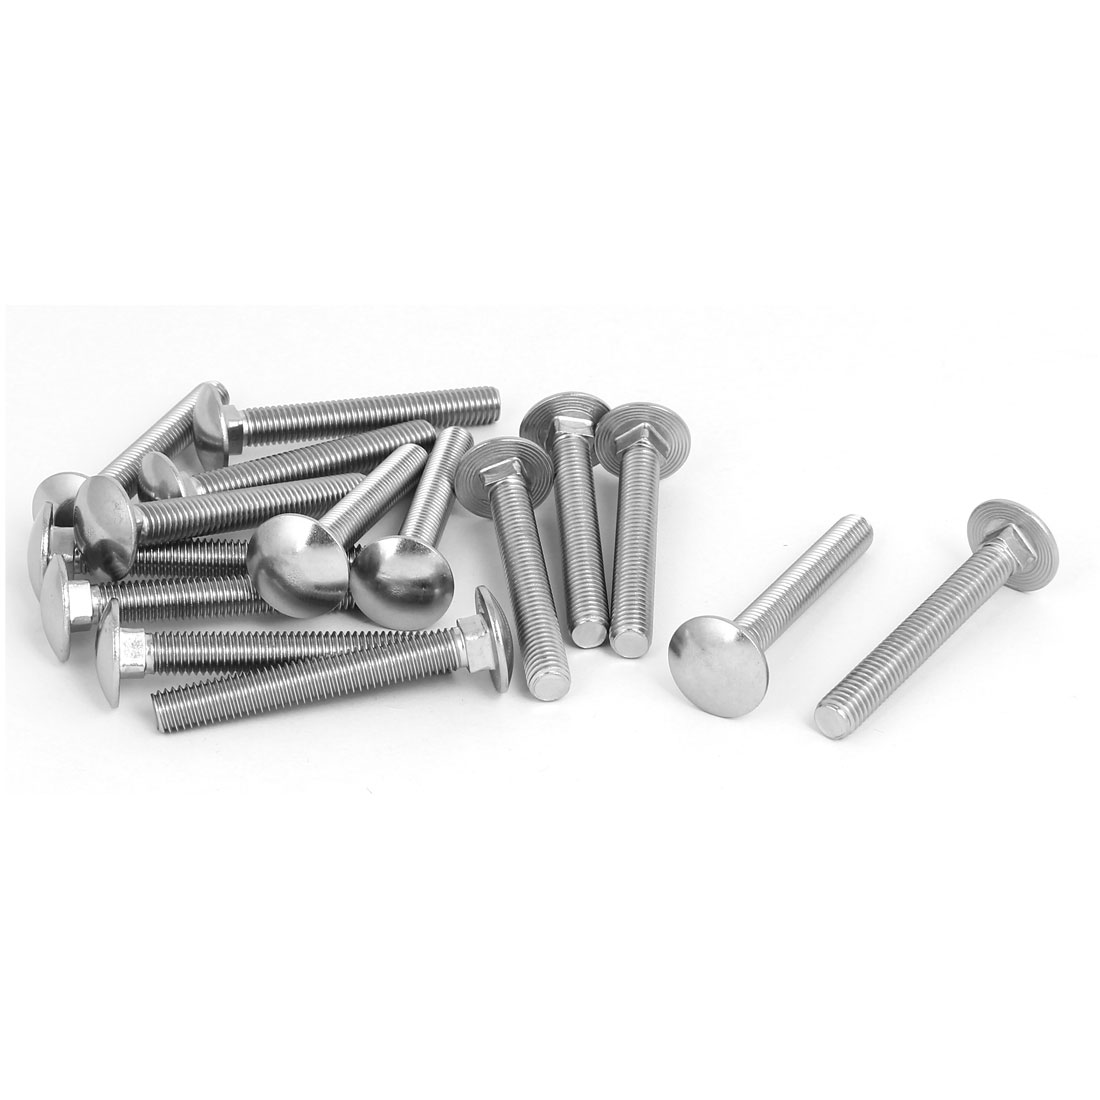 M8x60mm 304 Stainless Steel Round Cap Square Neck Trailer Carriage Bolts 15pcs